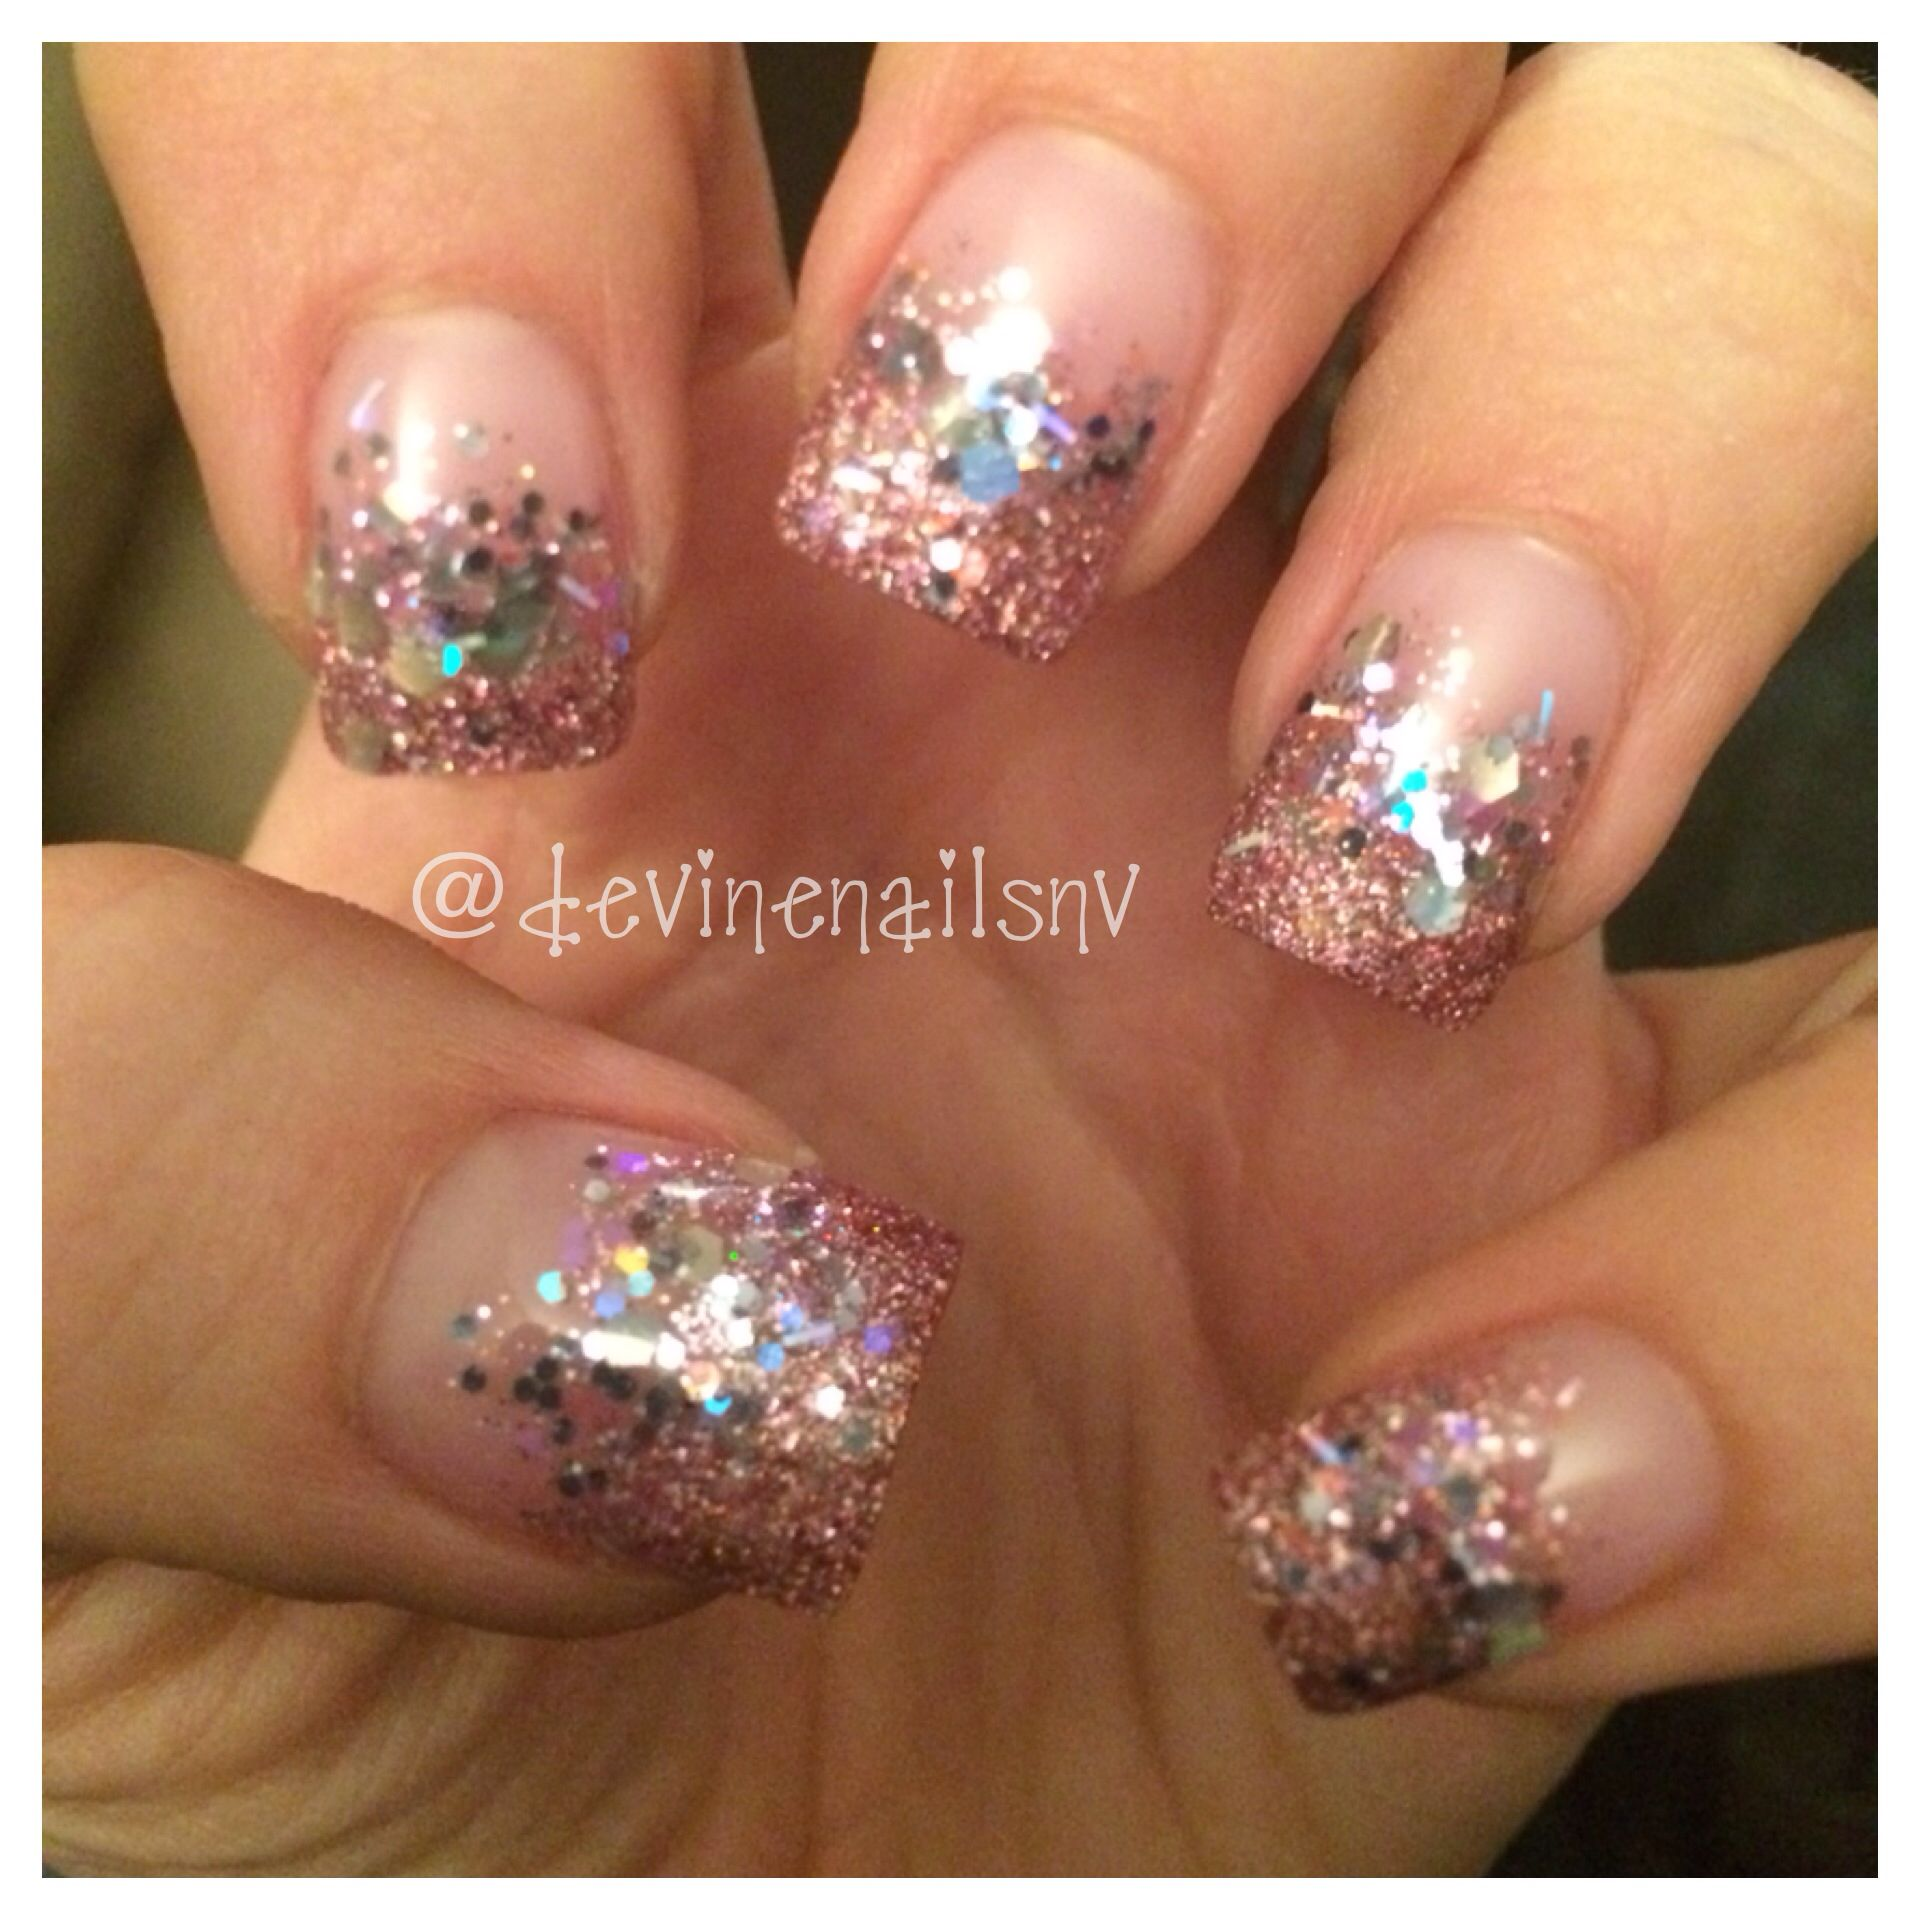 Pink glitter and silver glitter mix gel nails @devinenailsnv | Nails ...